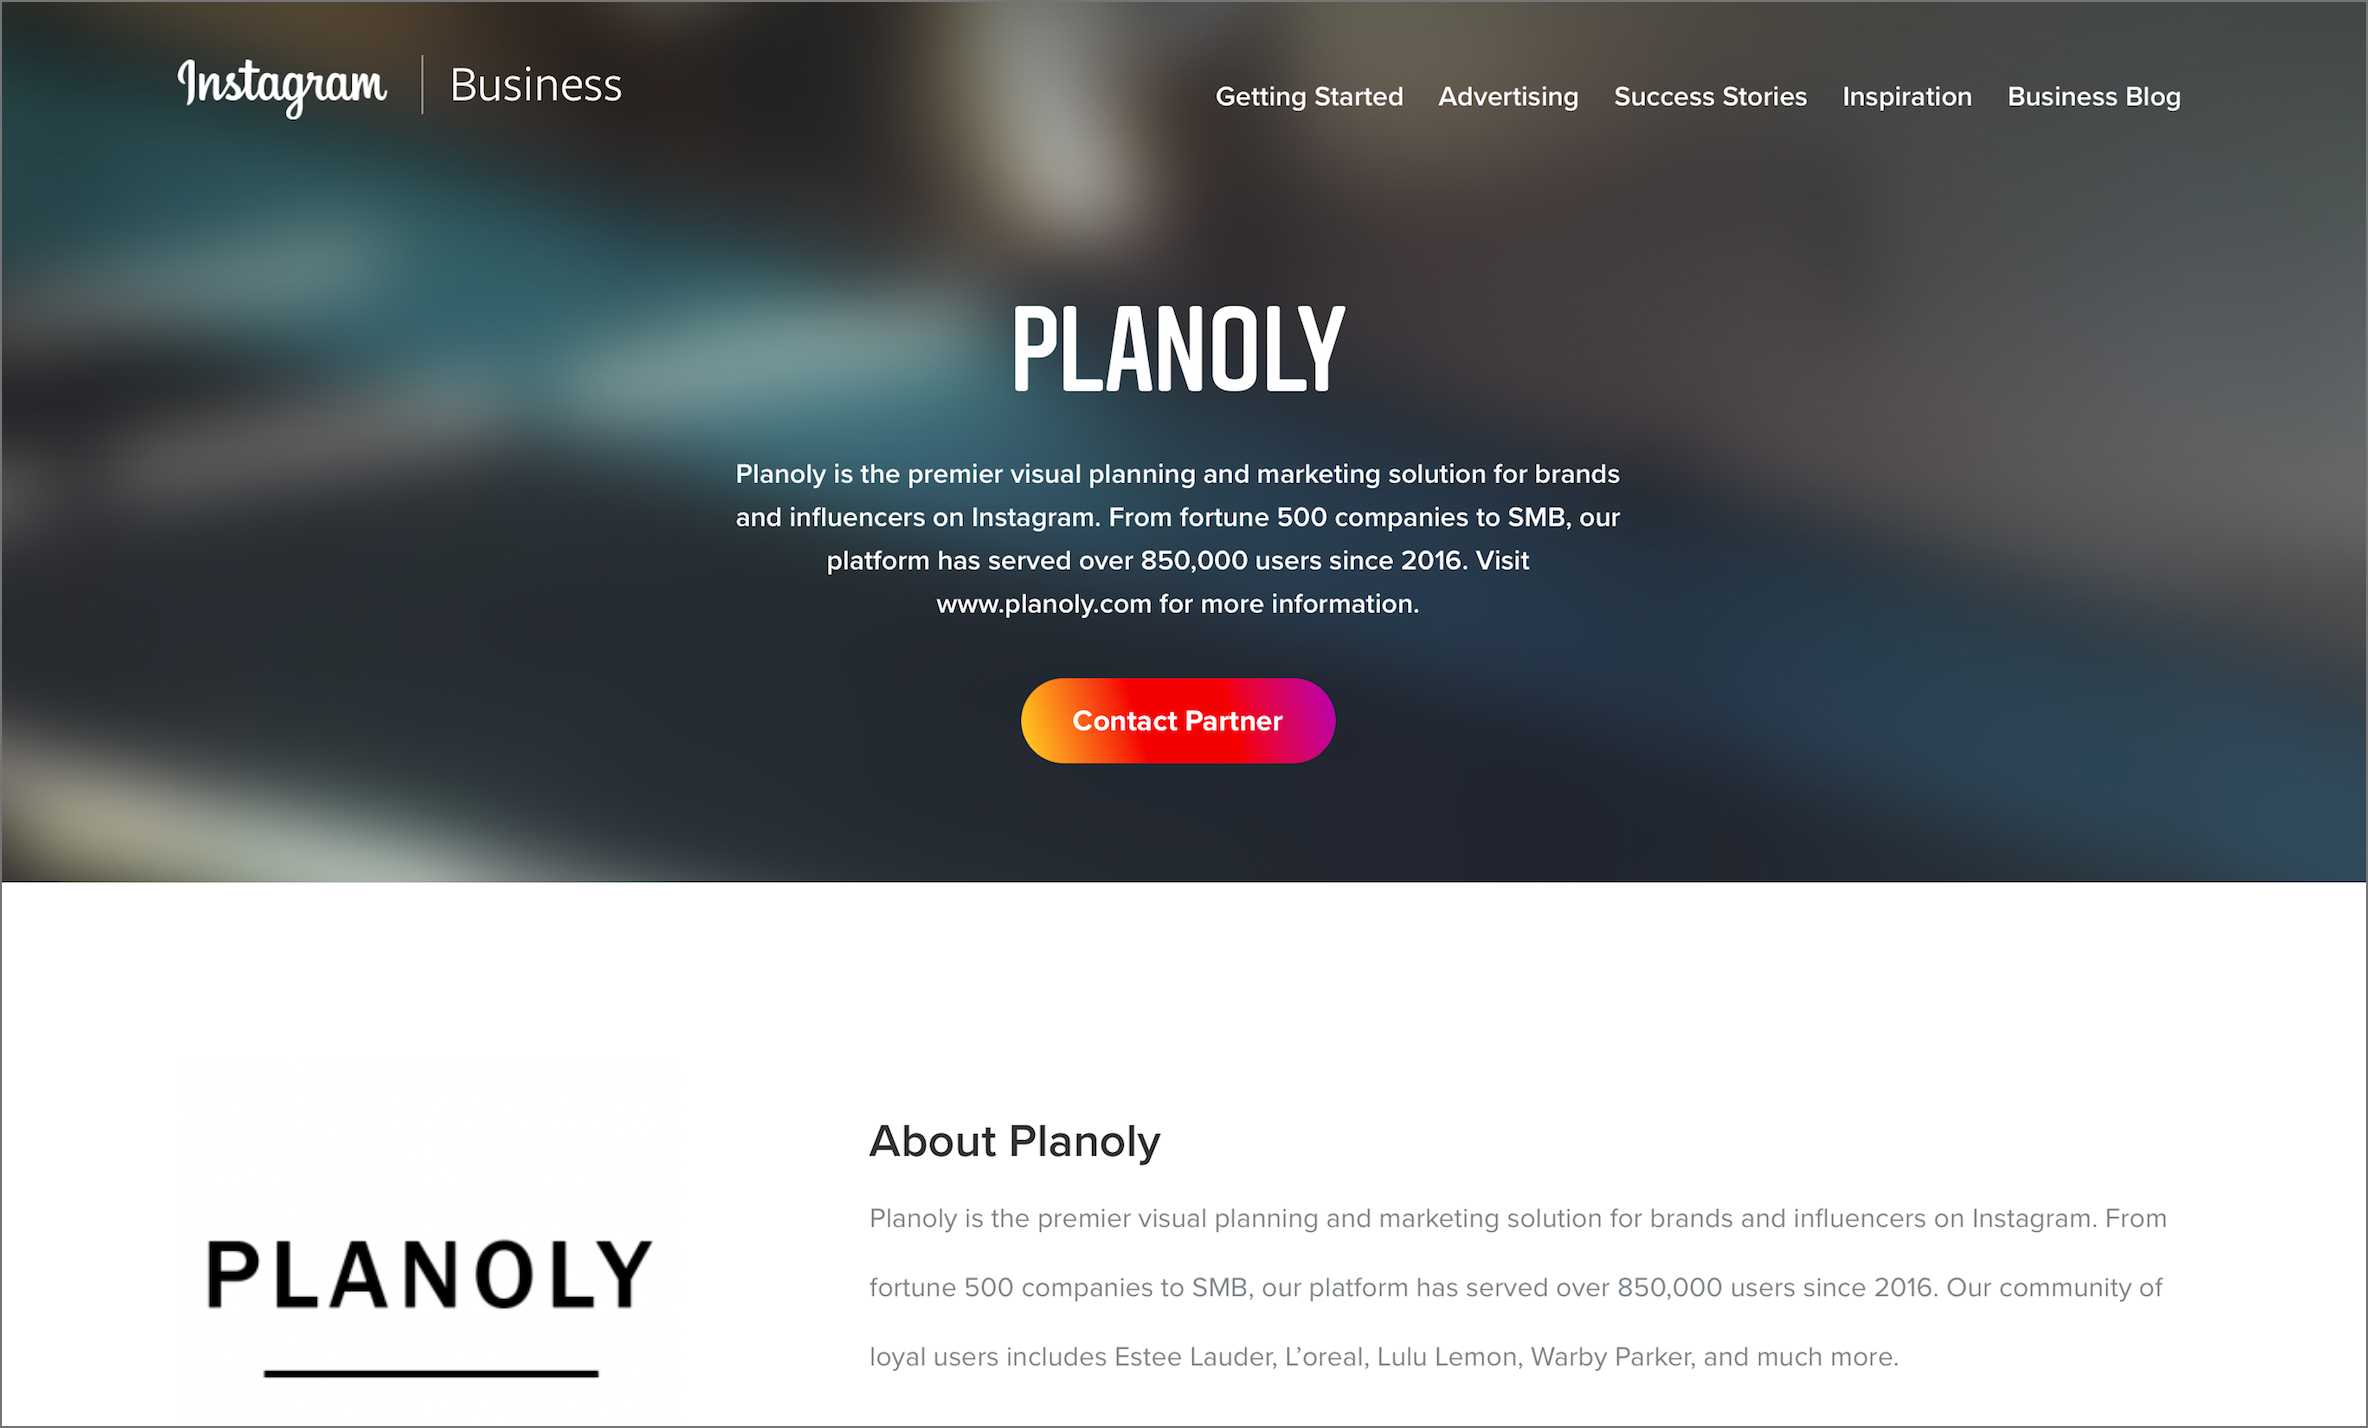 Planoly: An Official Instagram Partner